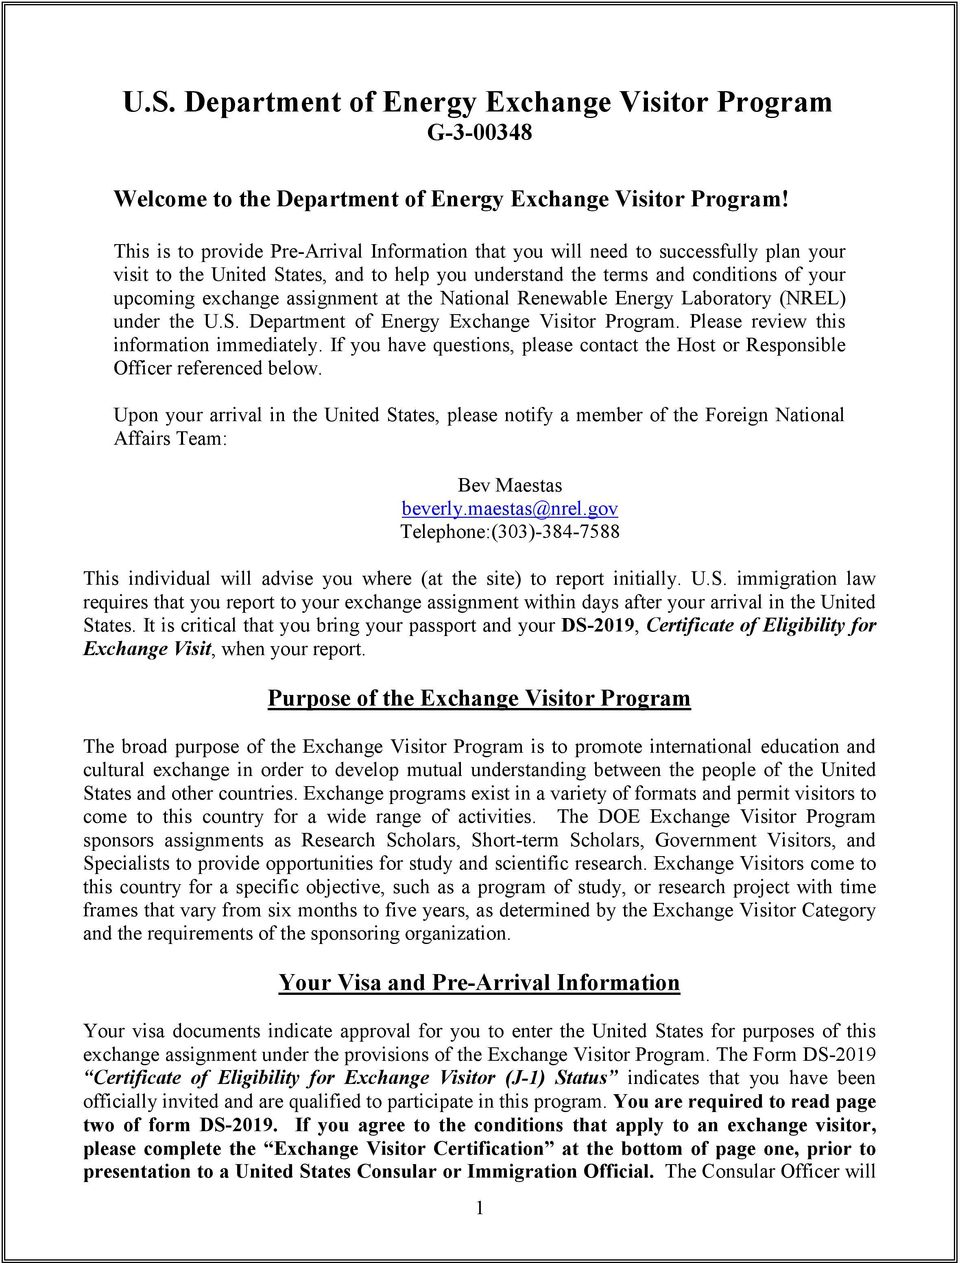 assignment at the National Renewable Energy Laboratory (NREL) under the U.S. Department of Energy Exchange Visitor Program. Please review this information immediately.